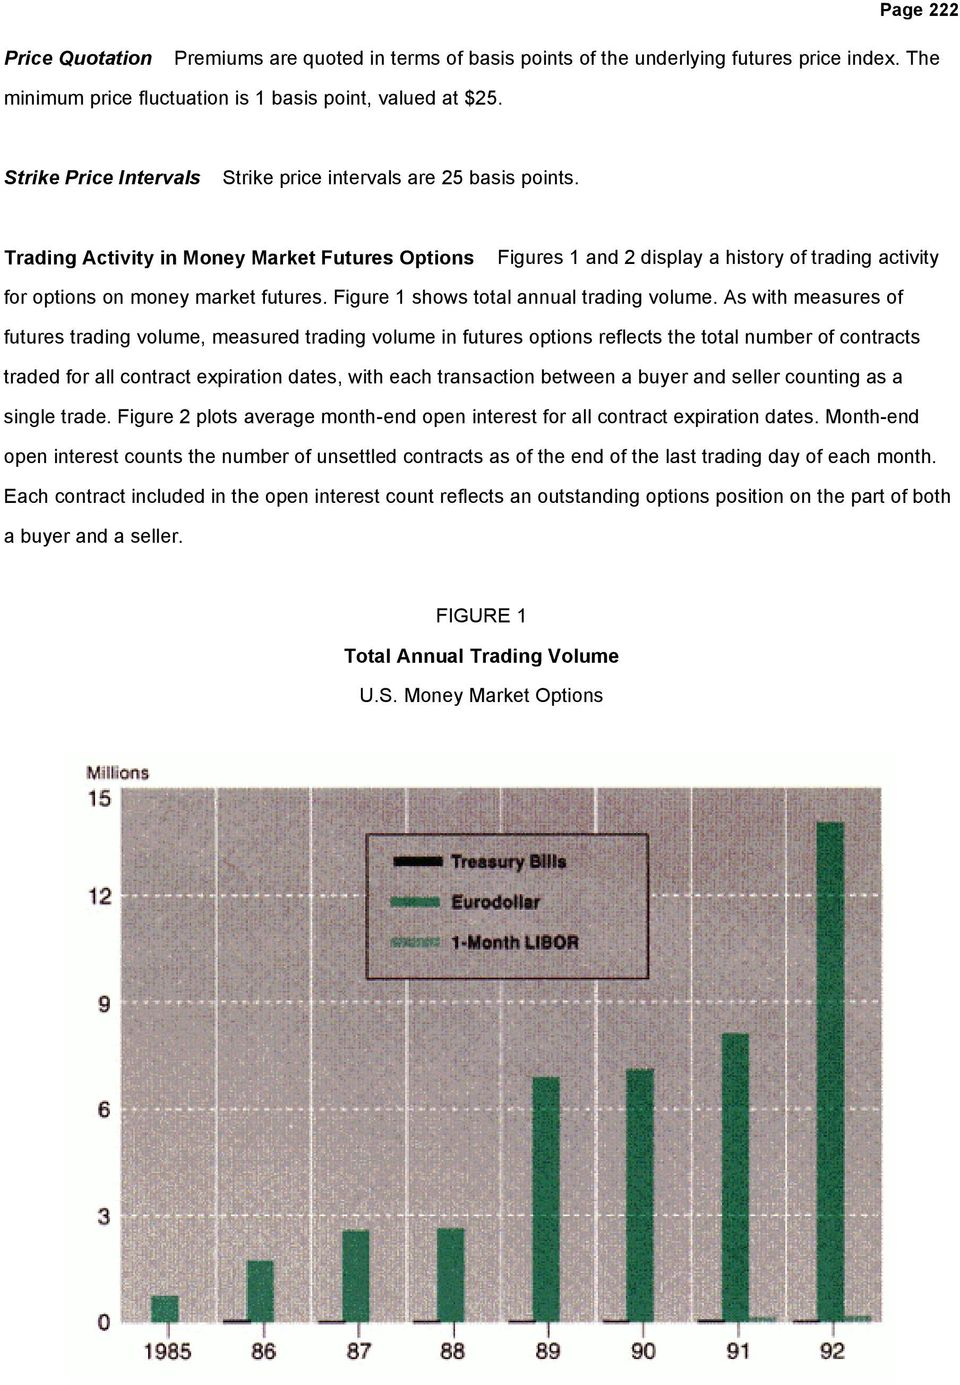 Trading Activity in Money Market Futures Options Figures 1 and 2 display a history of trading activity for options on money market futures. Figure 1 shows total annual trading volume.